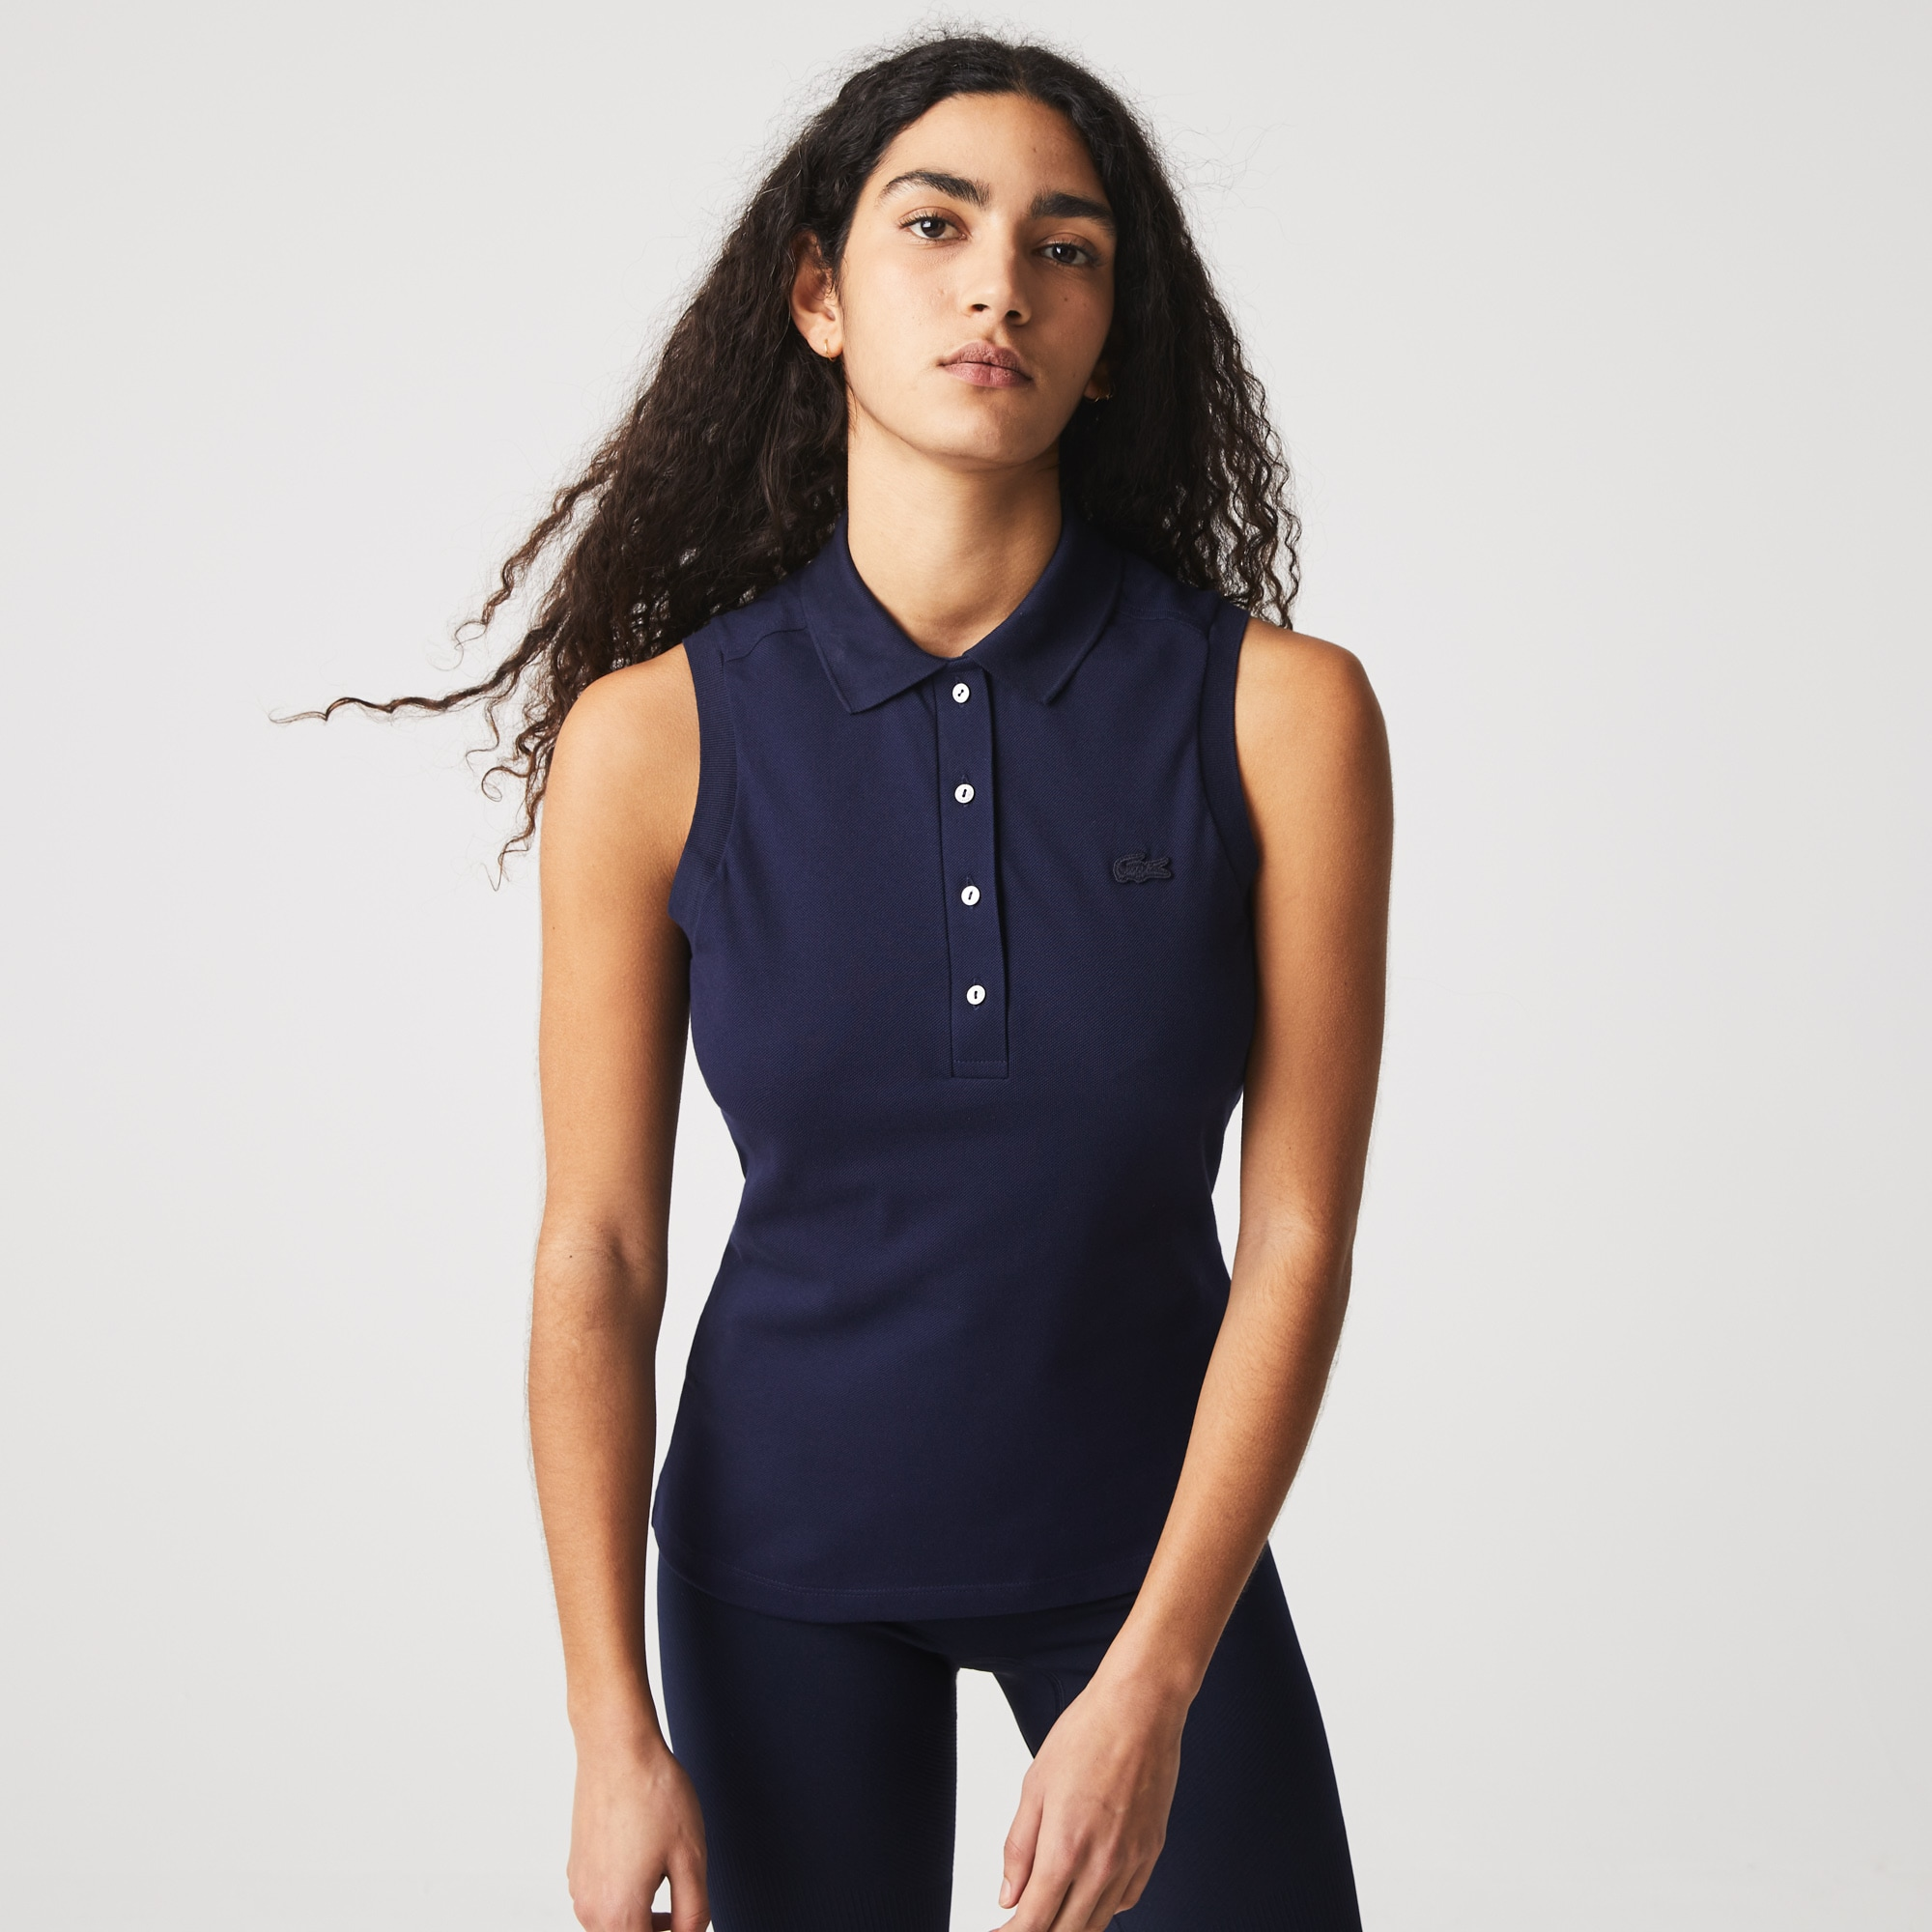 Women's Sleeveless Cotton Piqué Polo